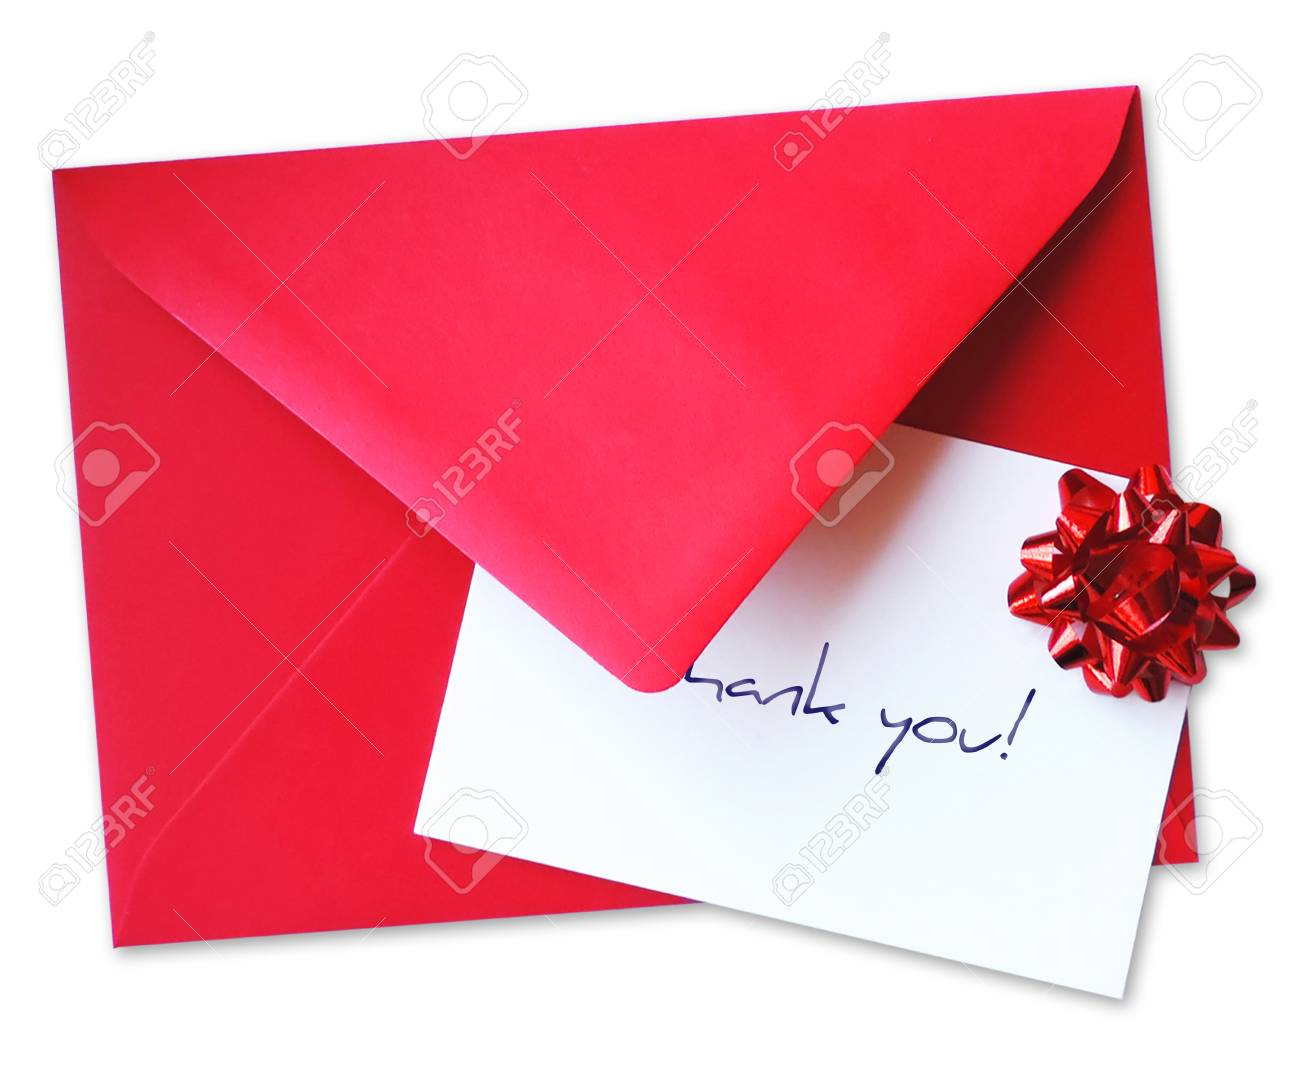 Red Envelope With Greeting Card And Thank You Writing With Red